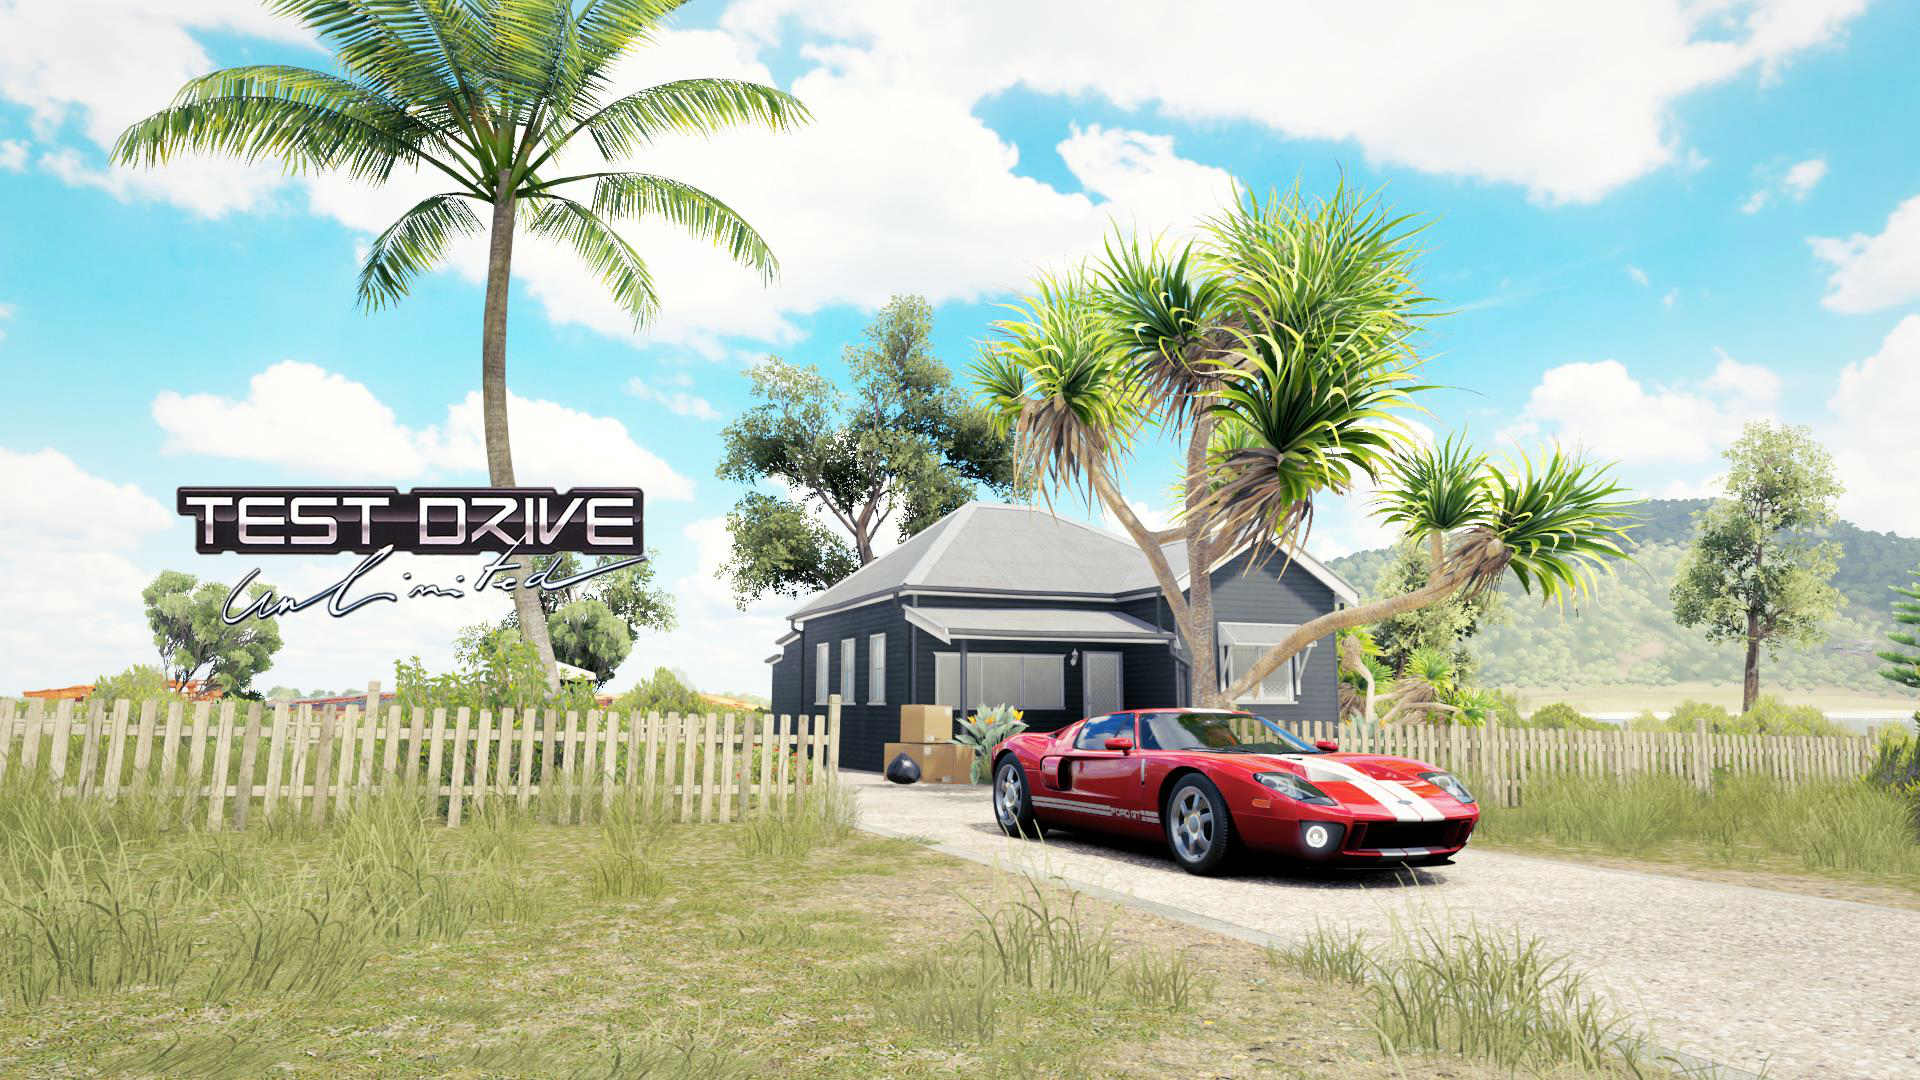 Test Drive Unlimited Forza Horizon 3